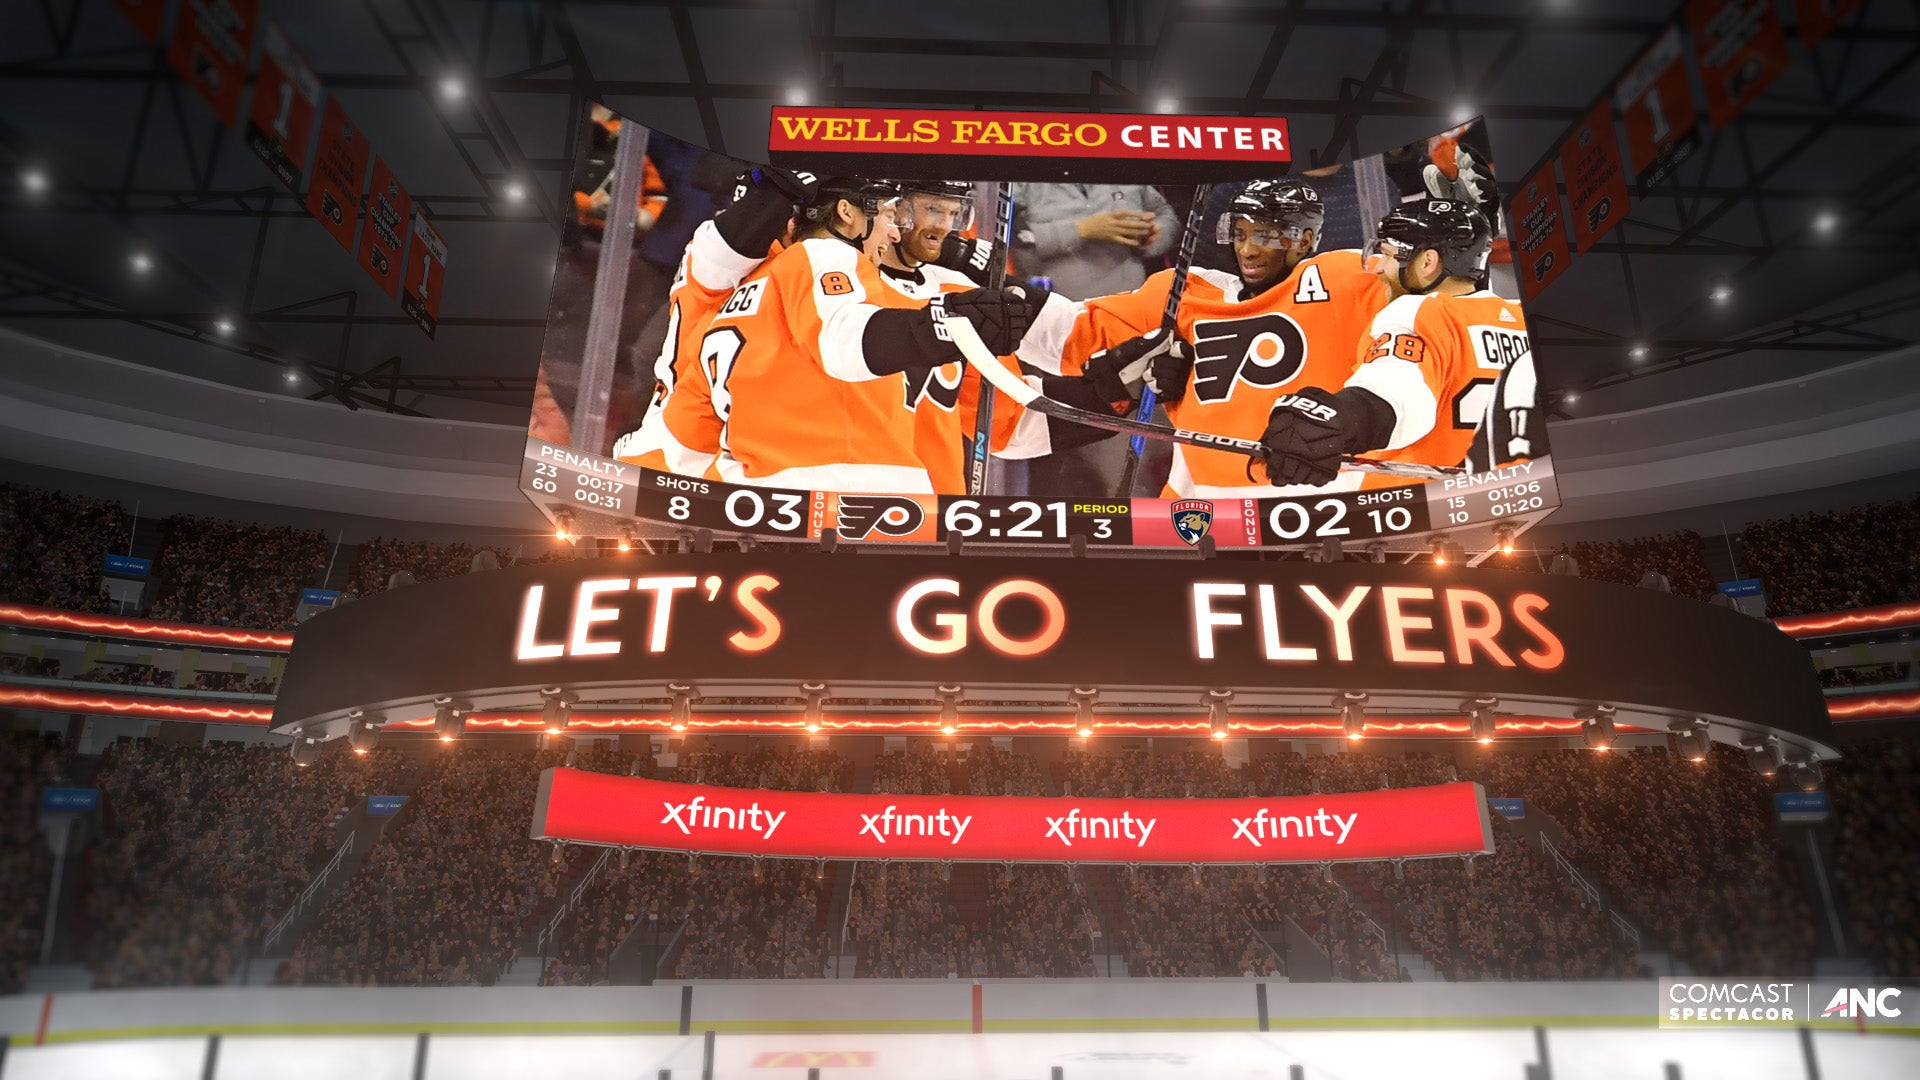 Wells Fargo Center to Introduce the Worlds First Kinetic